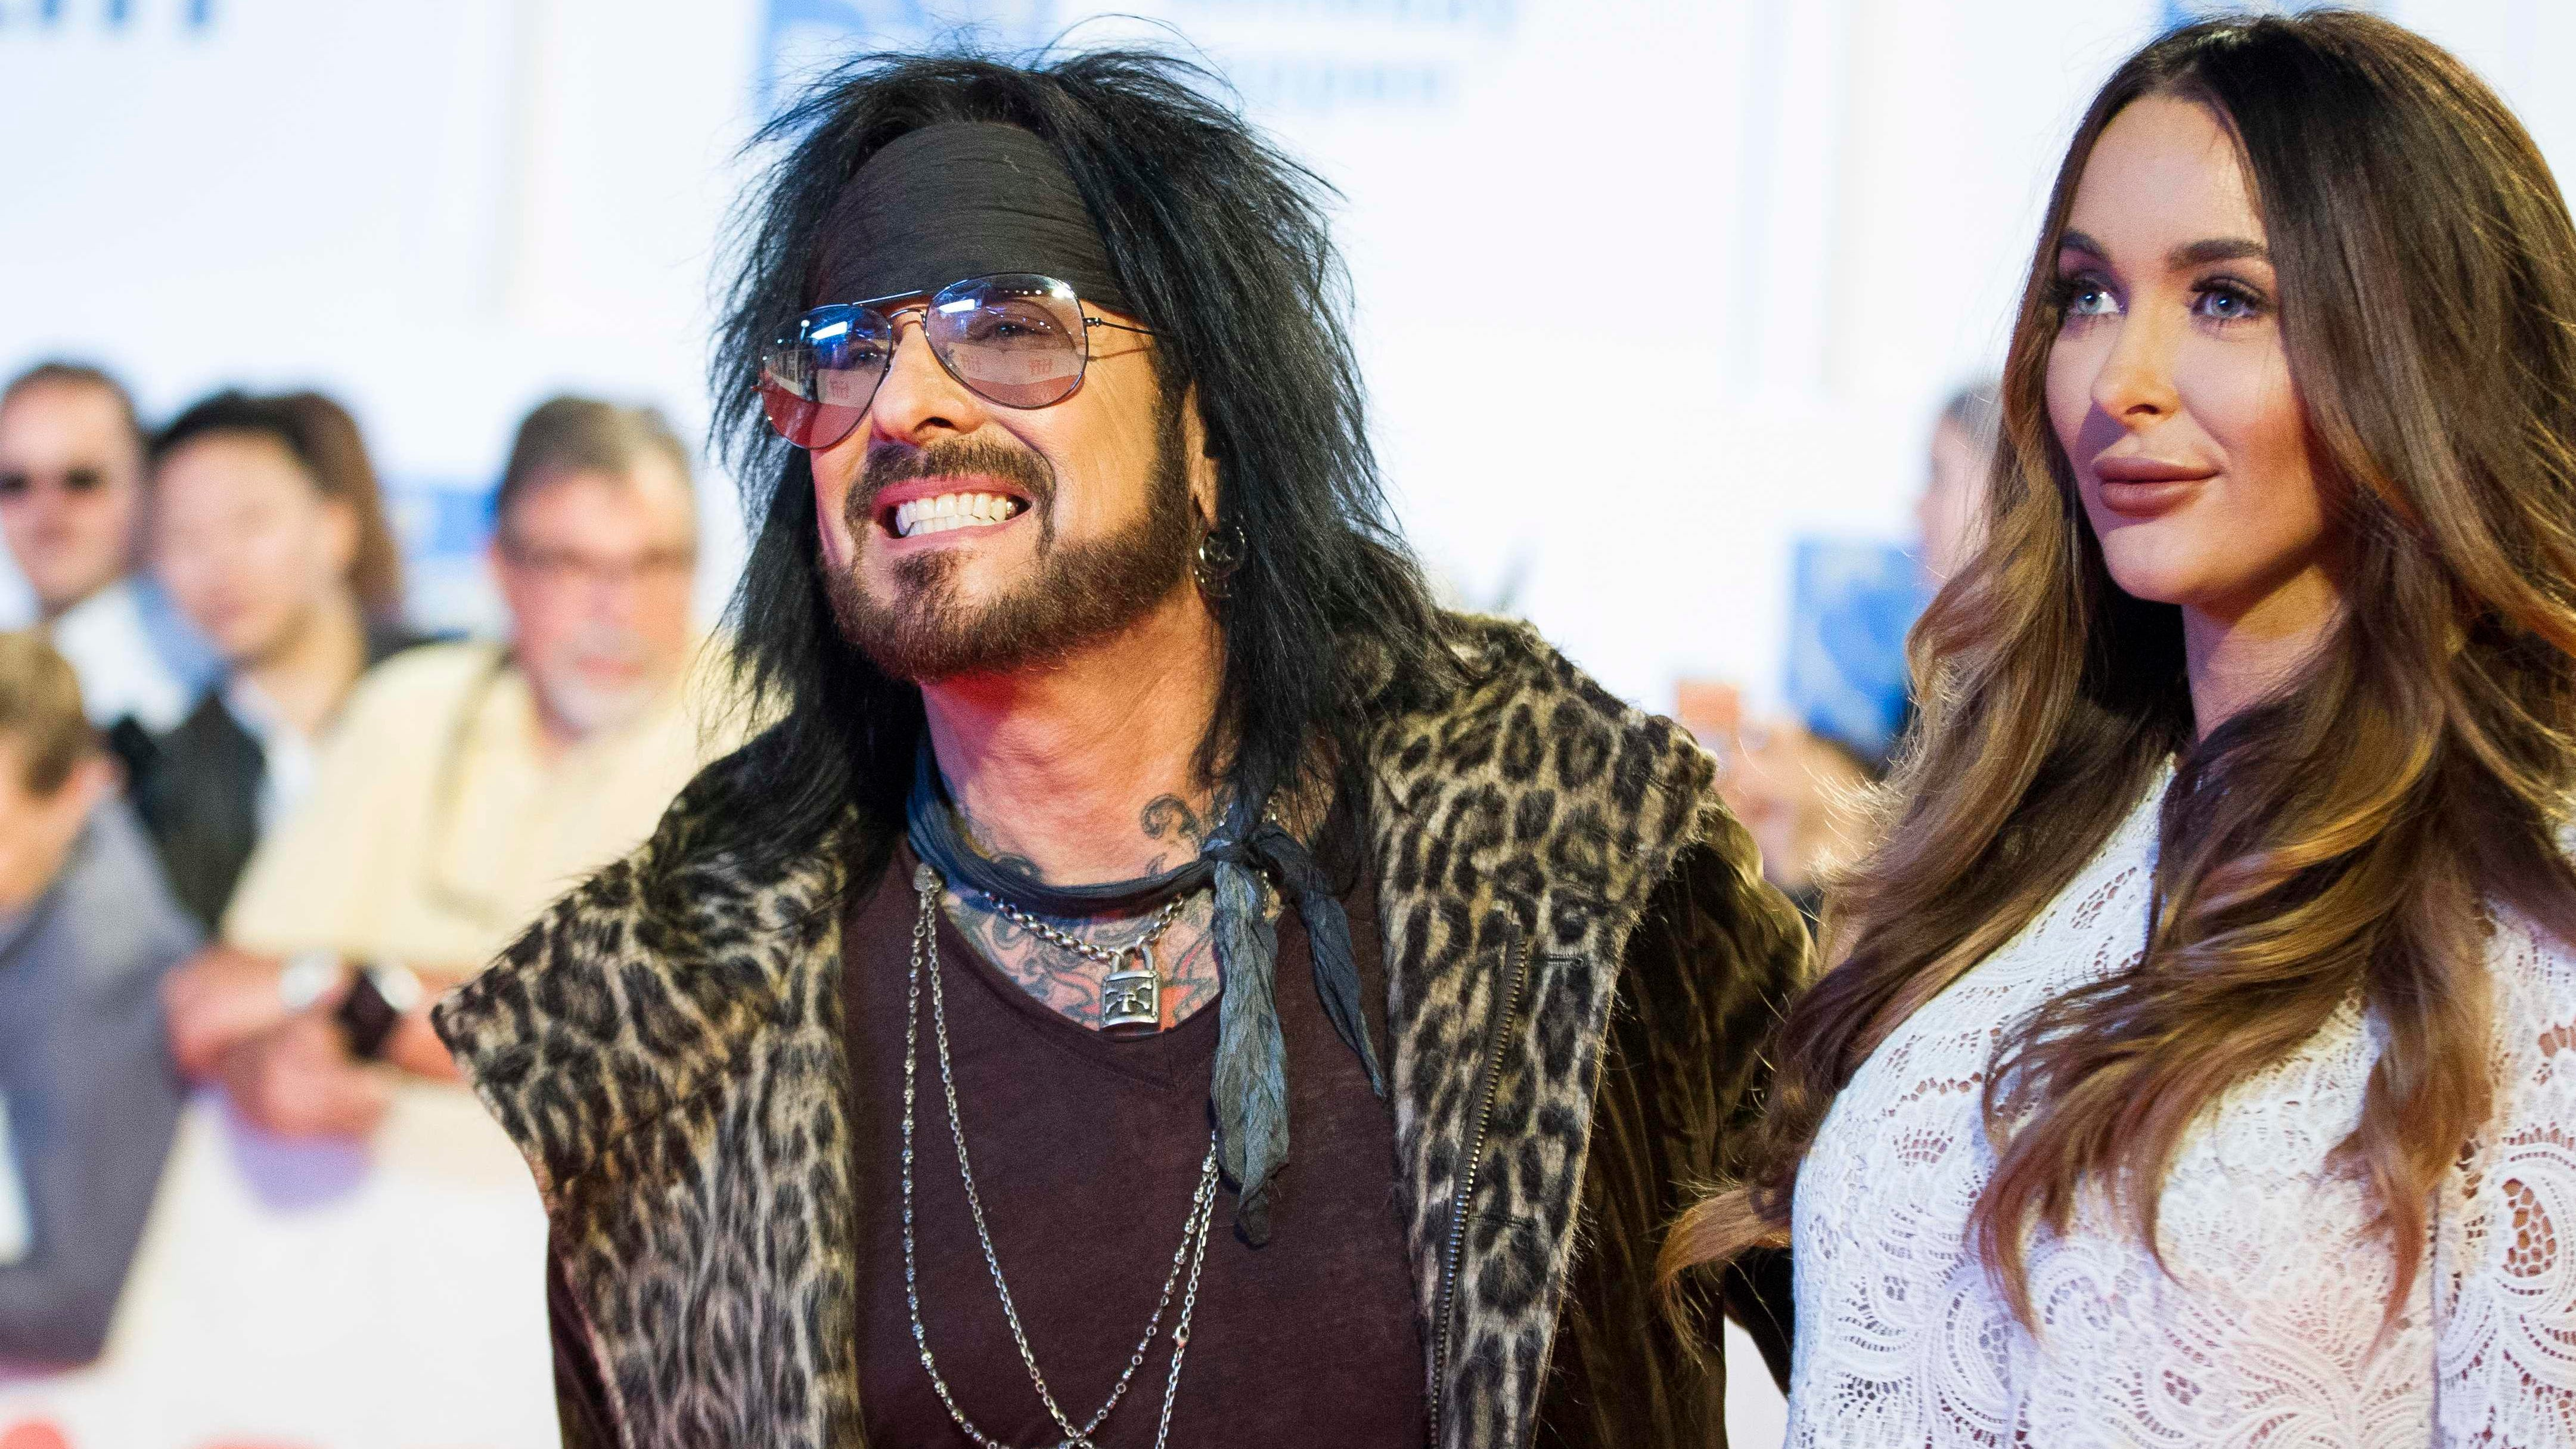 Nikki Sixx talks about having a baby at 60, post-vasectomy: 'I missed being a dad'